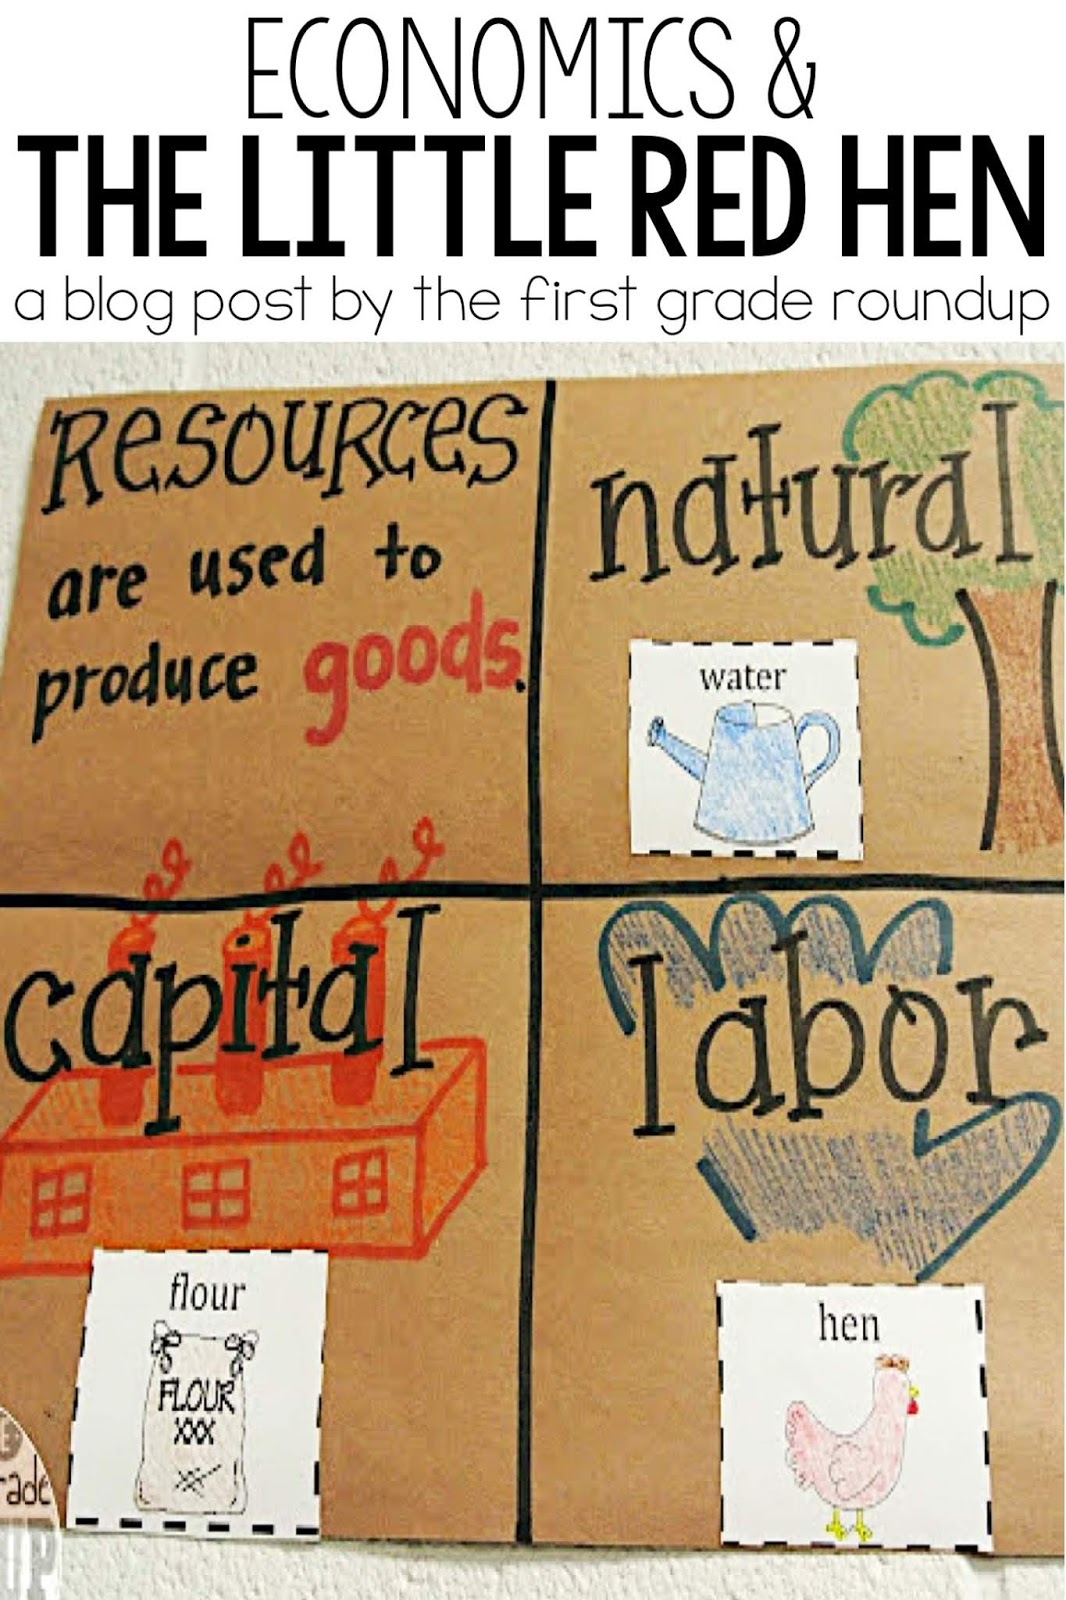 hight resolution of The Little Red Hen \u0026 Economics - Firstgraderoundup